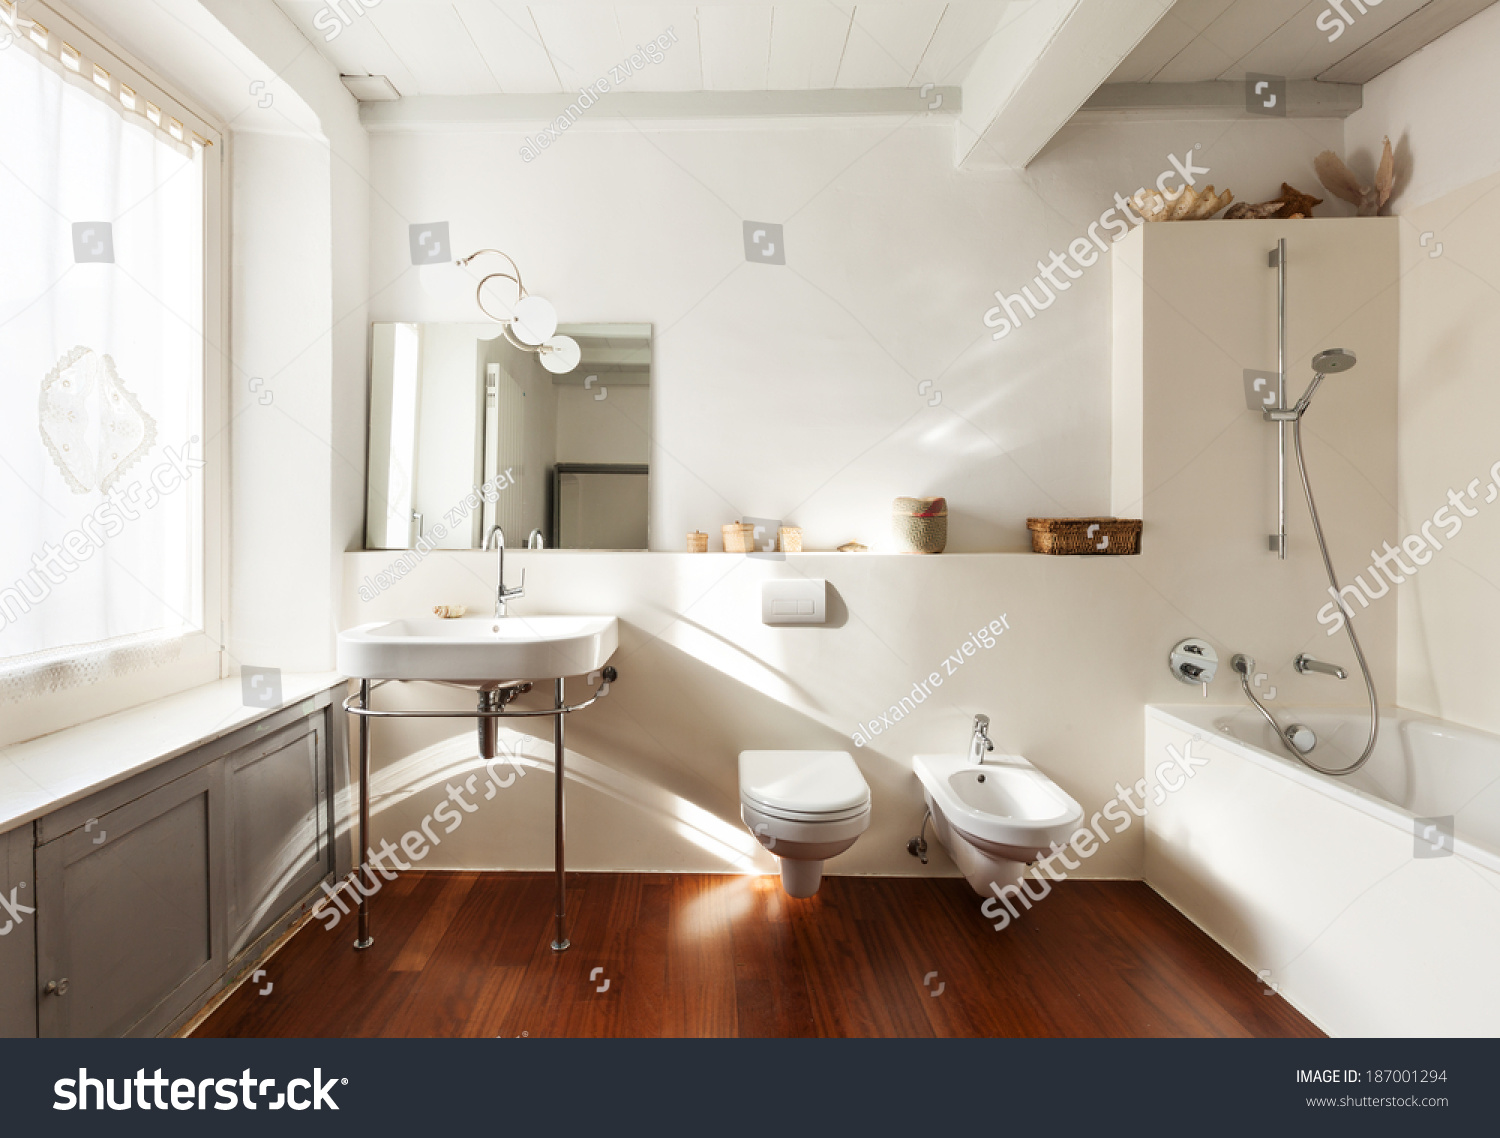 Comfortable bathroom interior nice loft stock photo 187001294 shutterstock - Comfy interiors ...